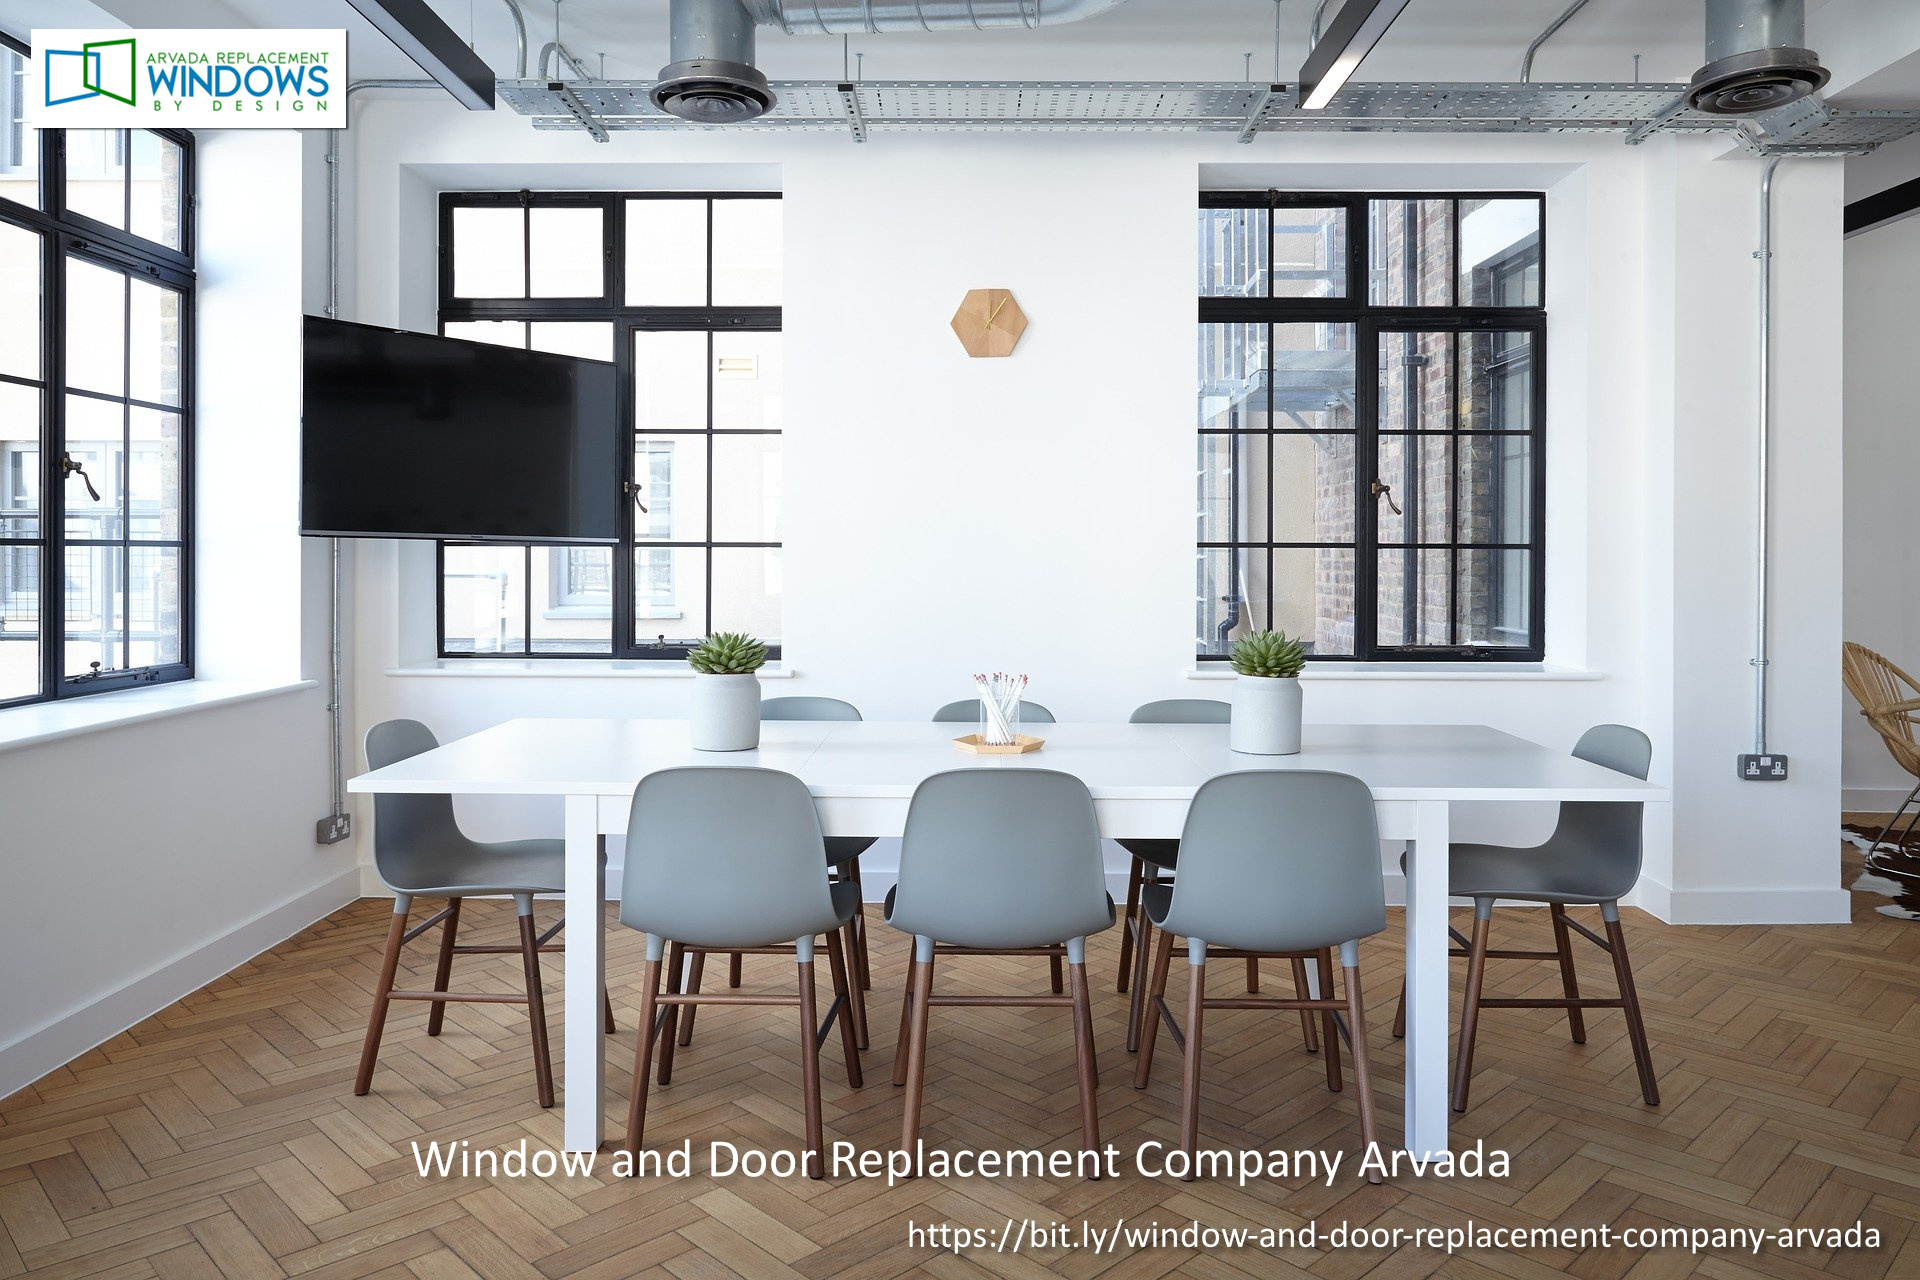 Arvada Replacement Windows By Design Outlines Recent Customer Reviews